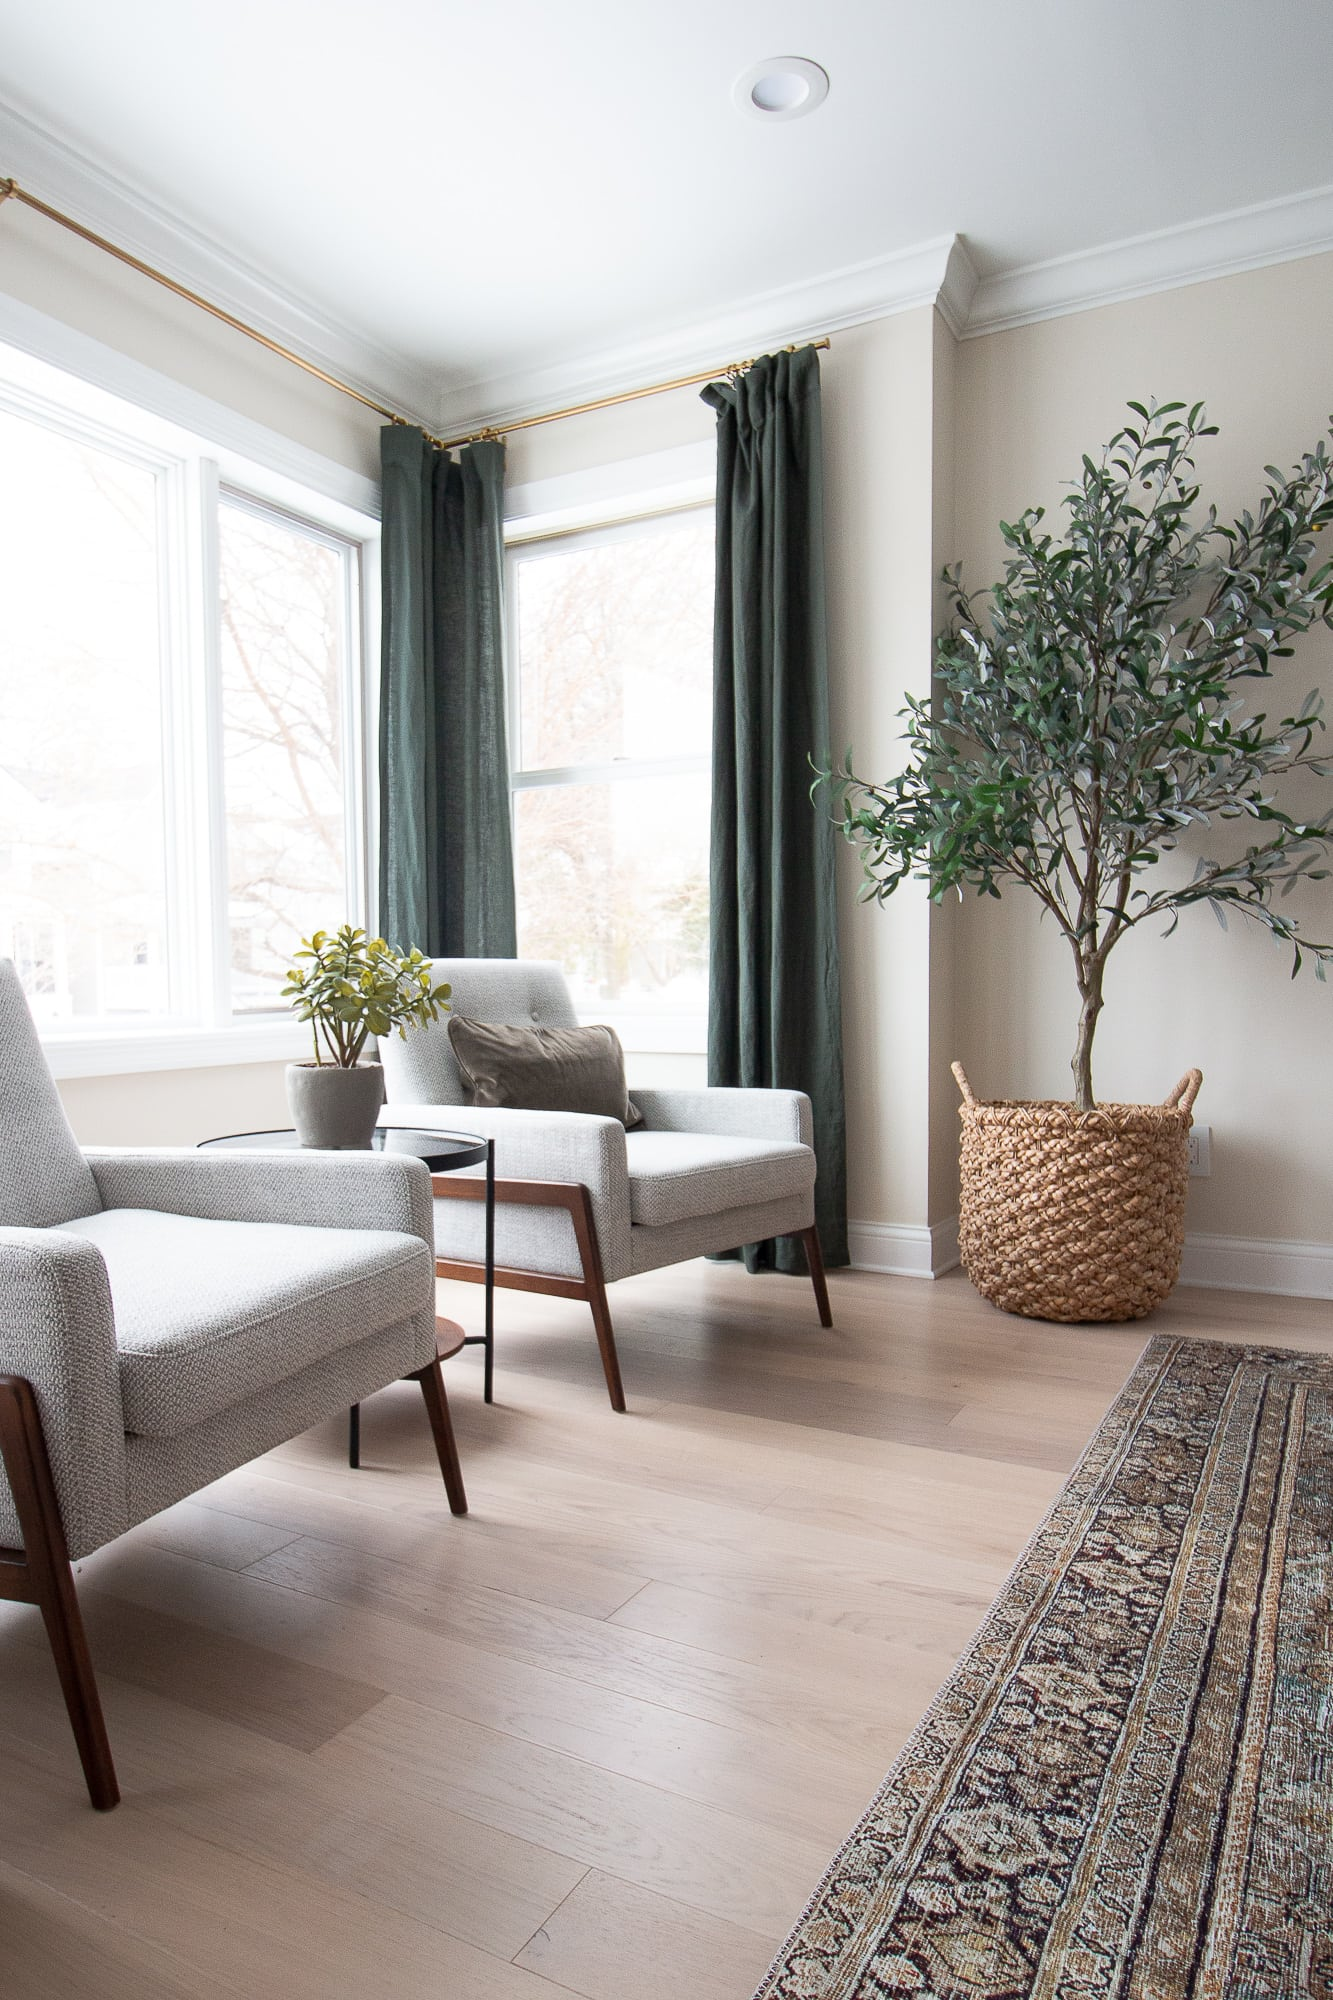 Olive tree from crate and barrel on black friday sales 2019